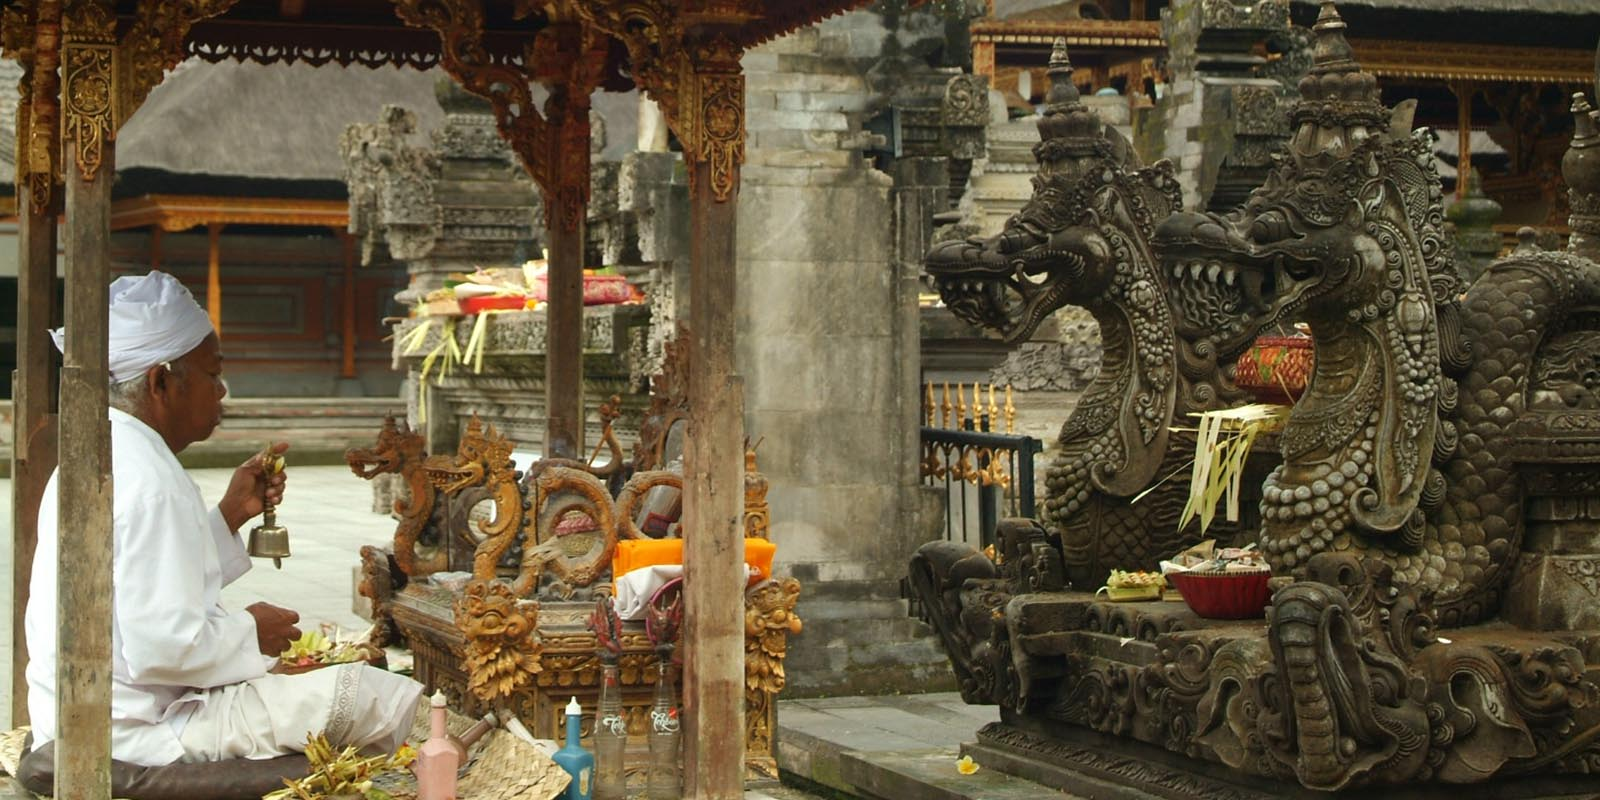 Balinese ceremony at the local temple